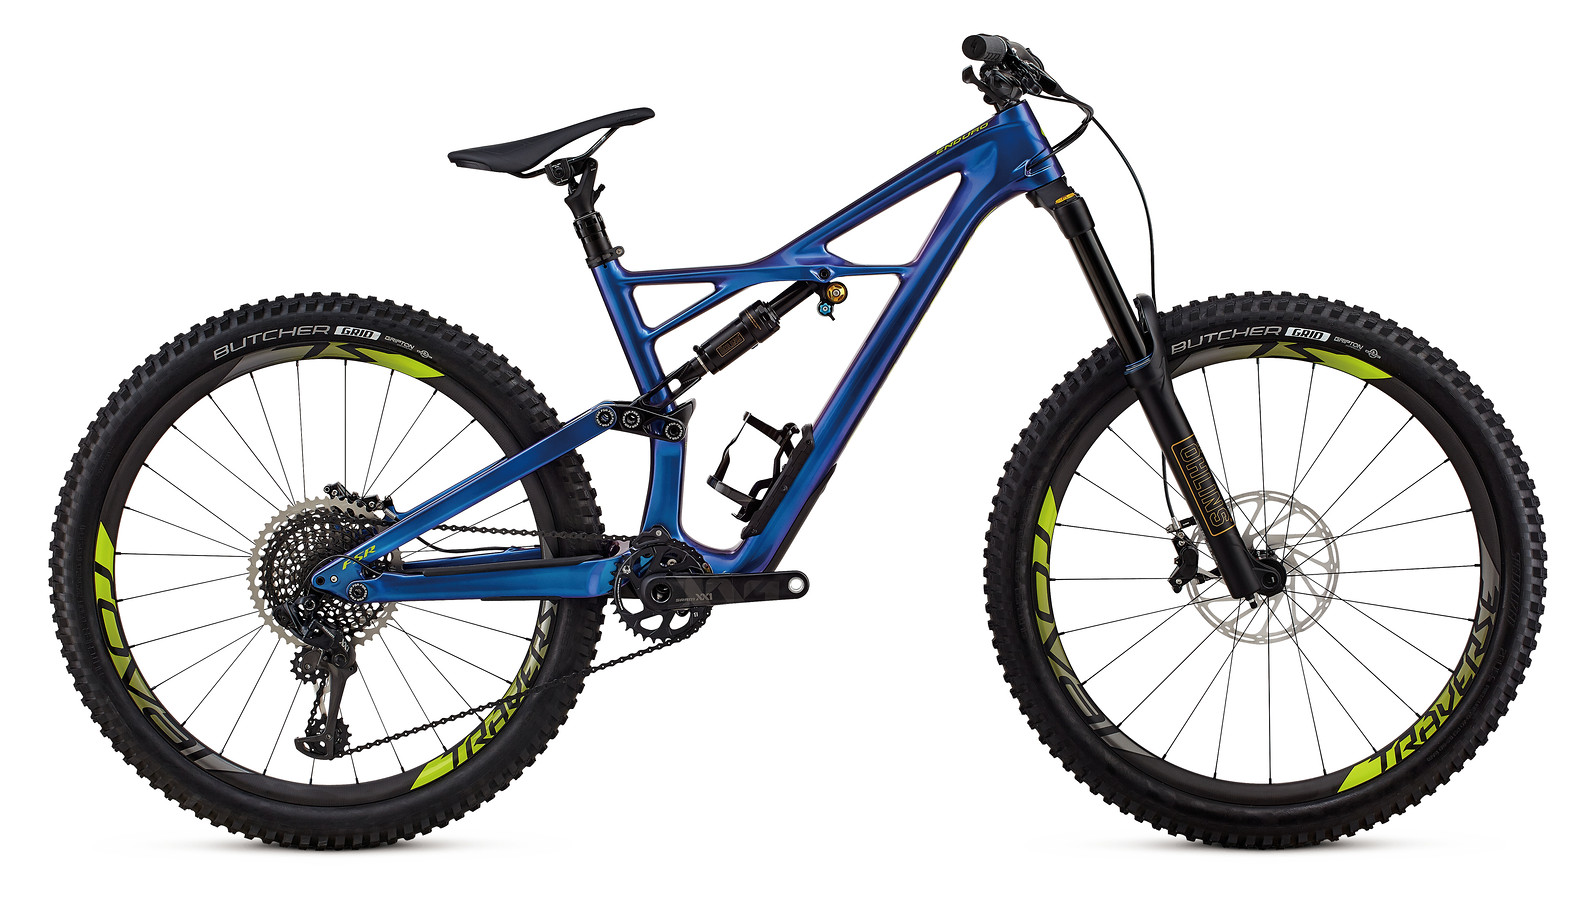 2018 Specialized S-Works Enduro 27.5 Bike - Reviews, Comparisons ...